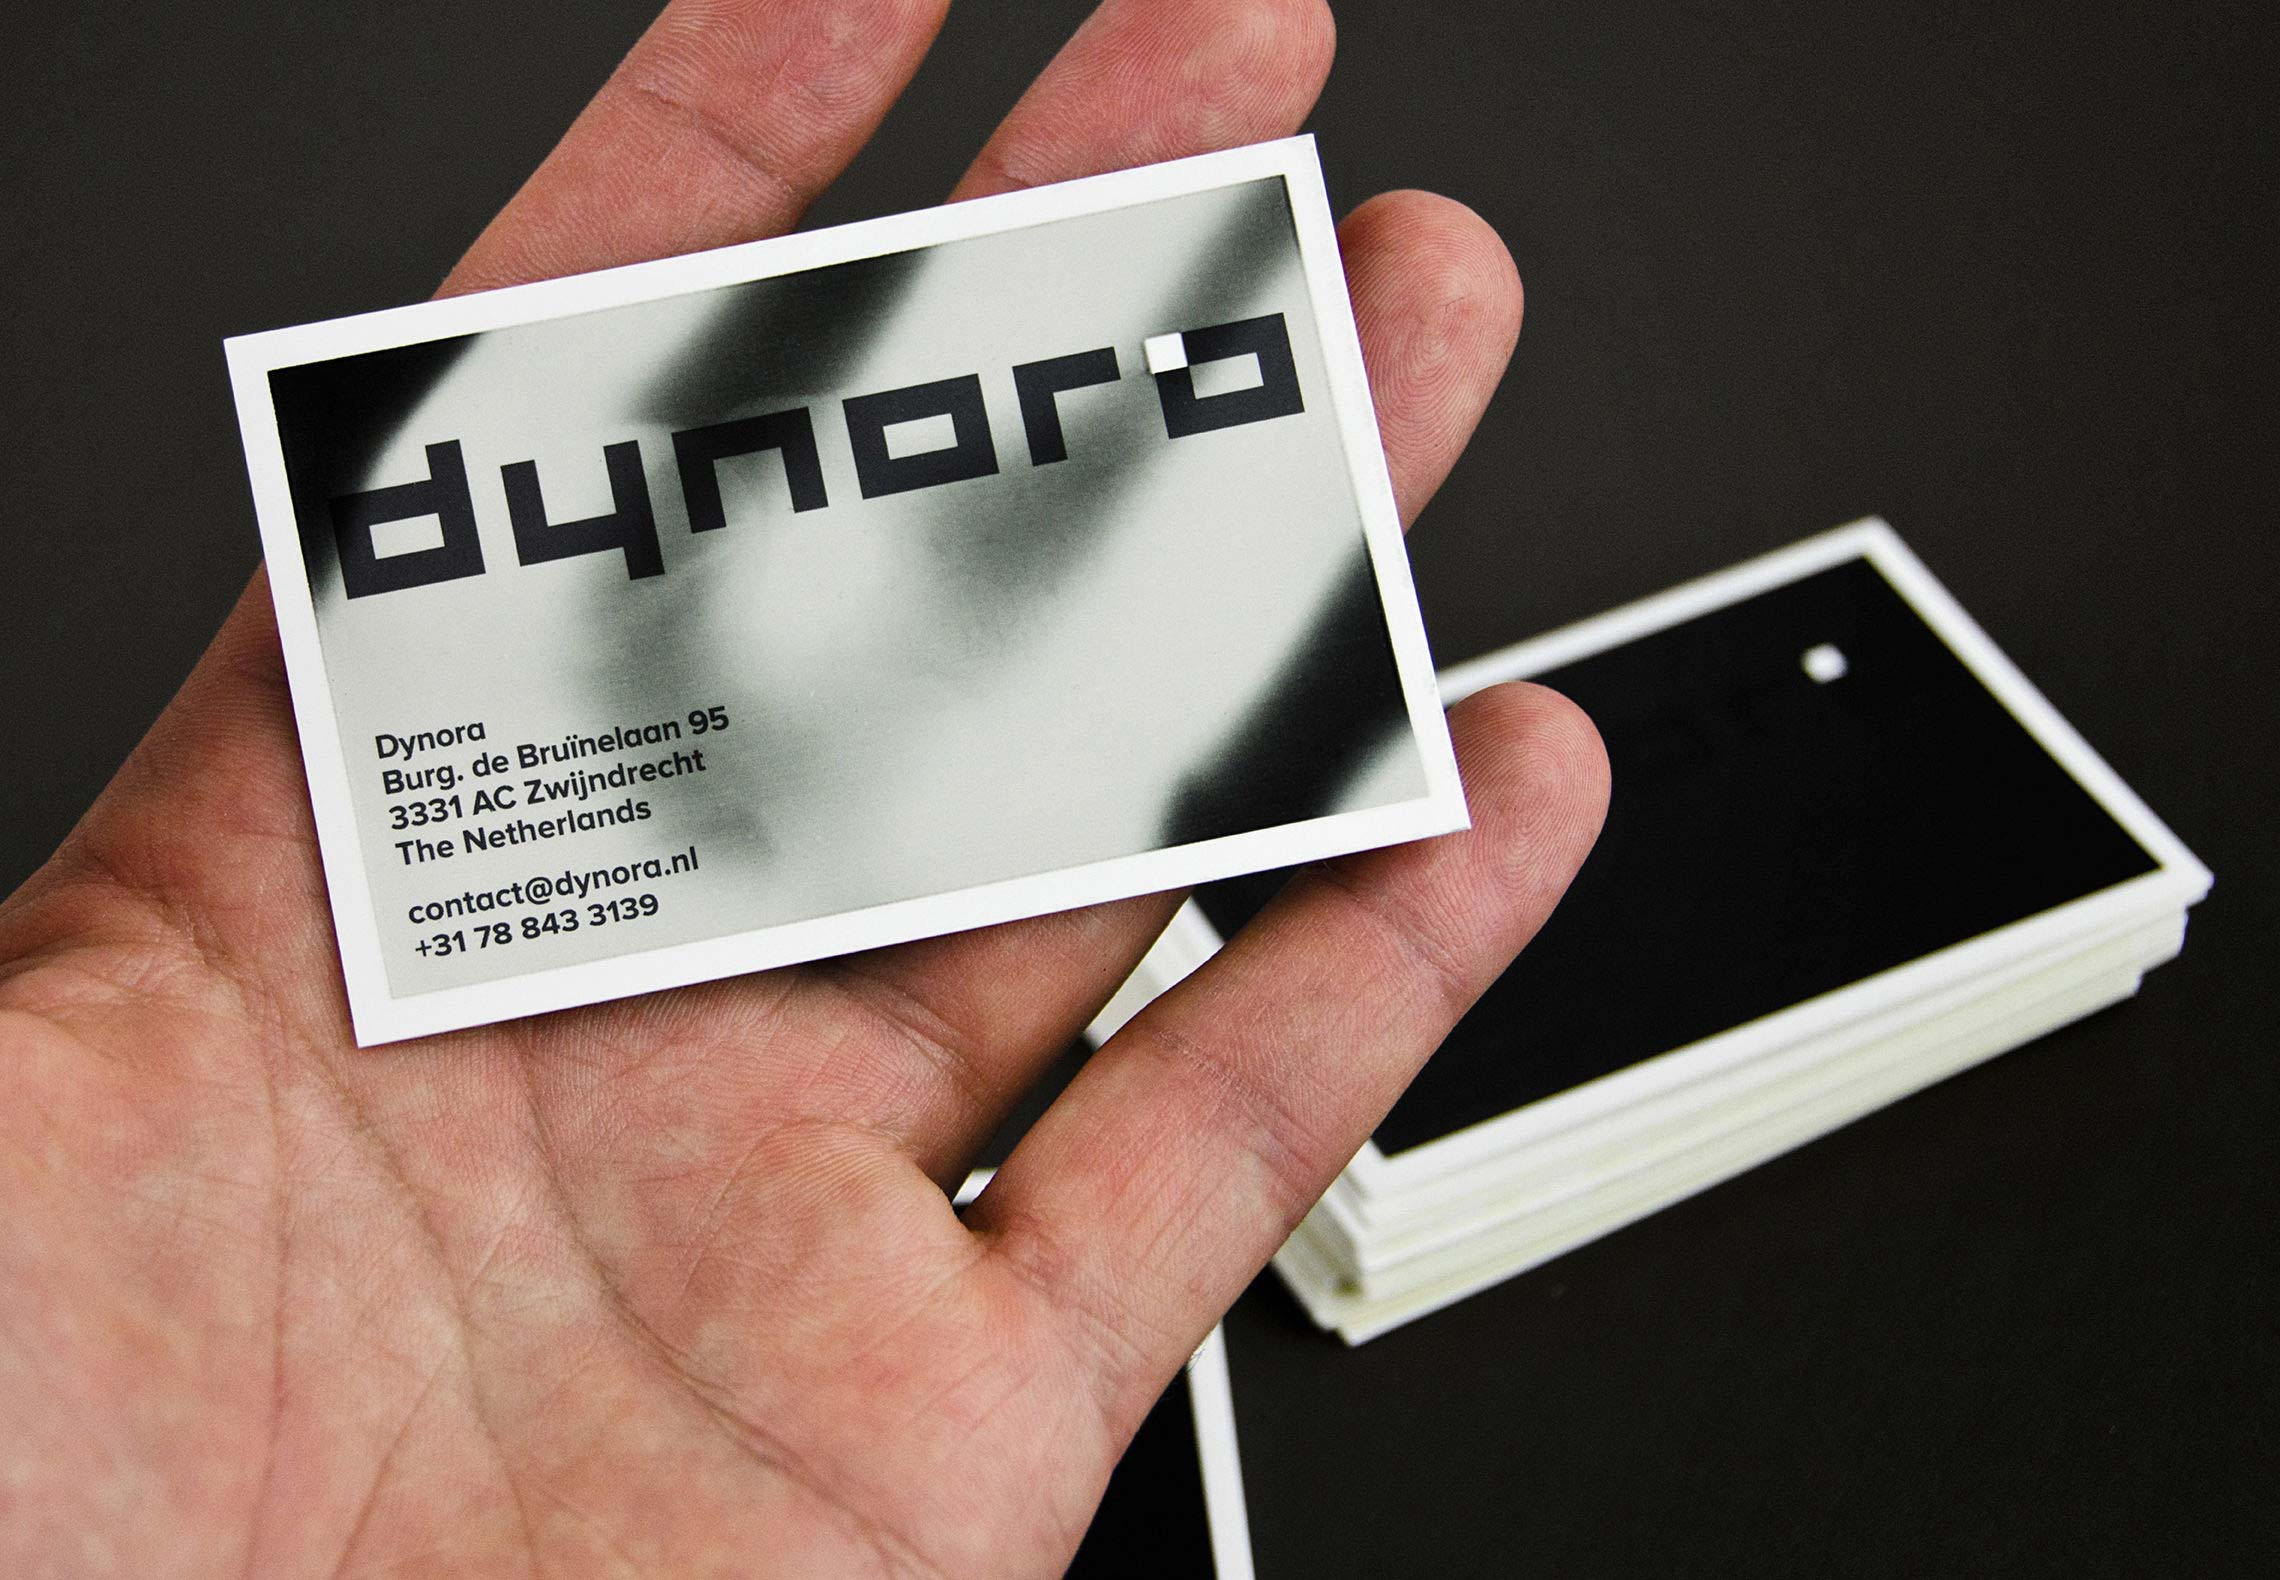 Dynora thermal ink business card taken by storm reheart Gallery